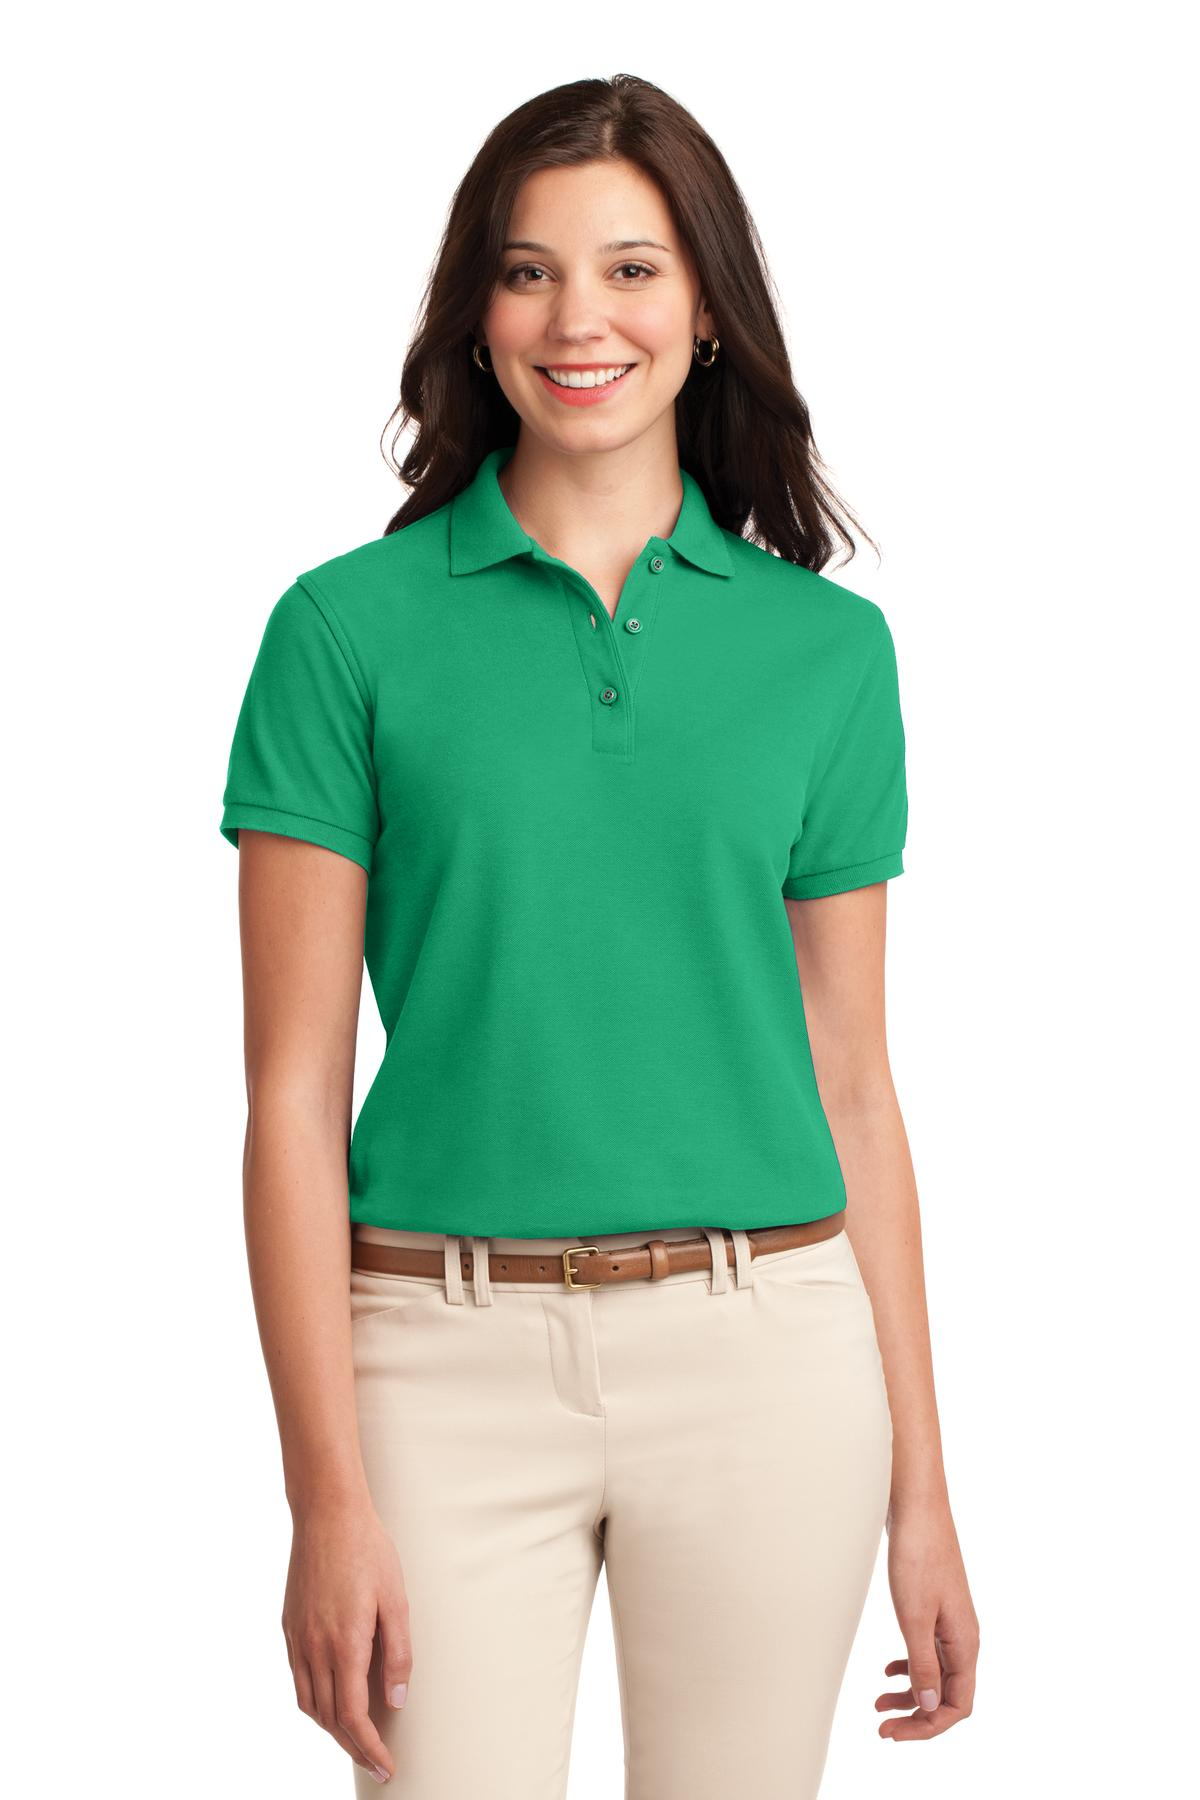 Coffee Bean Port Authority Ladies Silk Touch Polo.